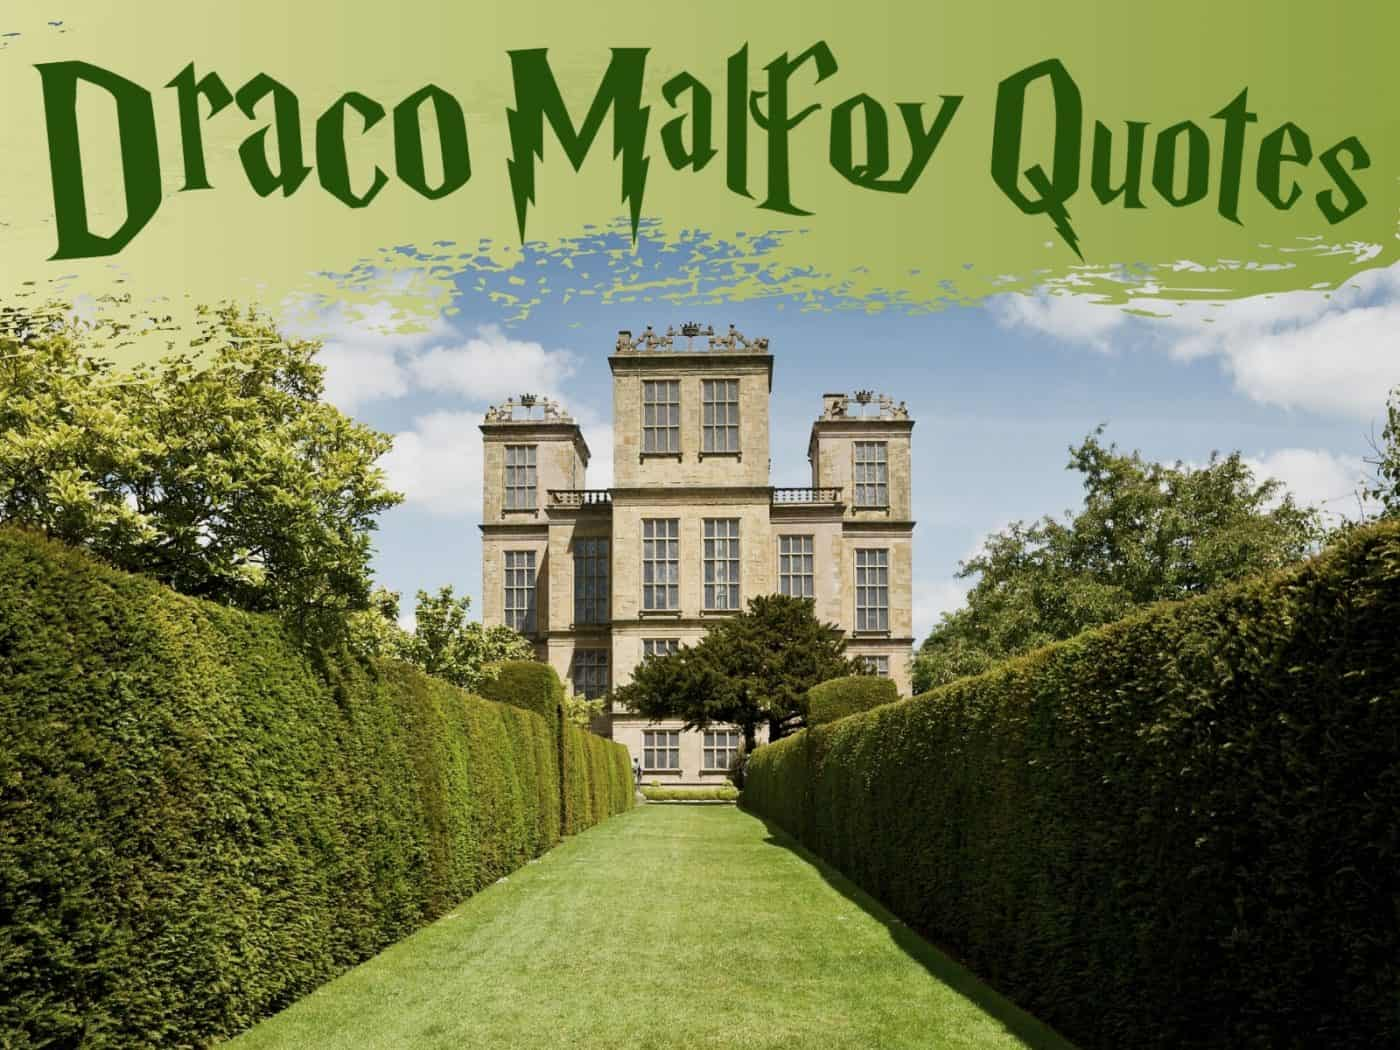 Best Draco Malfoy quotes